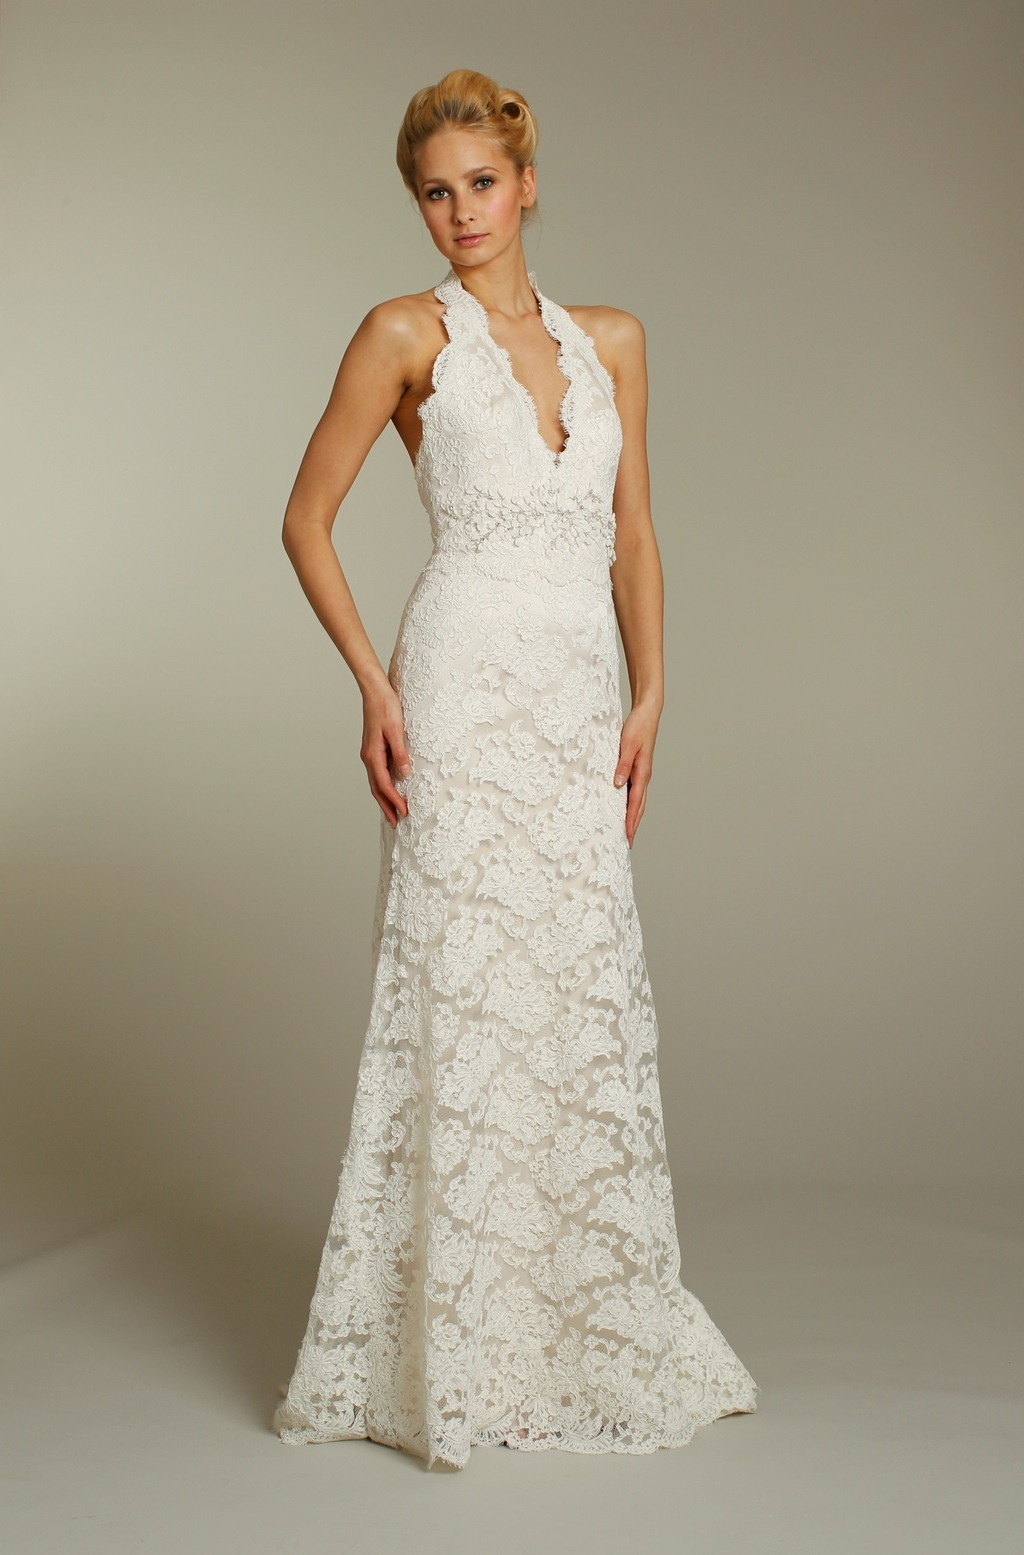 Ivory lace modified mermaid wedding dress with embellished